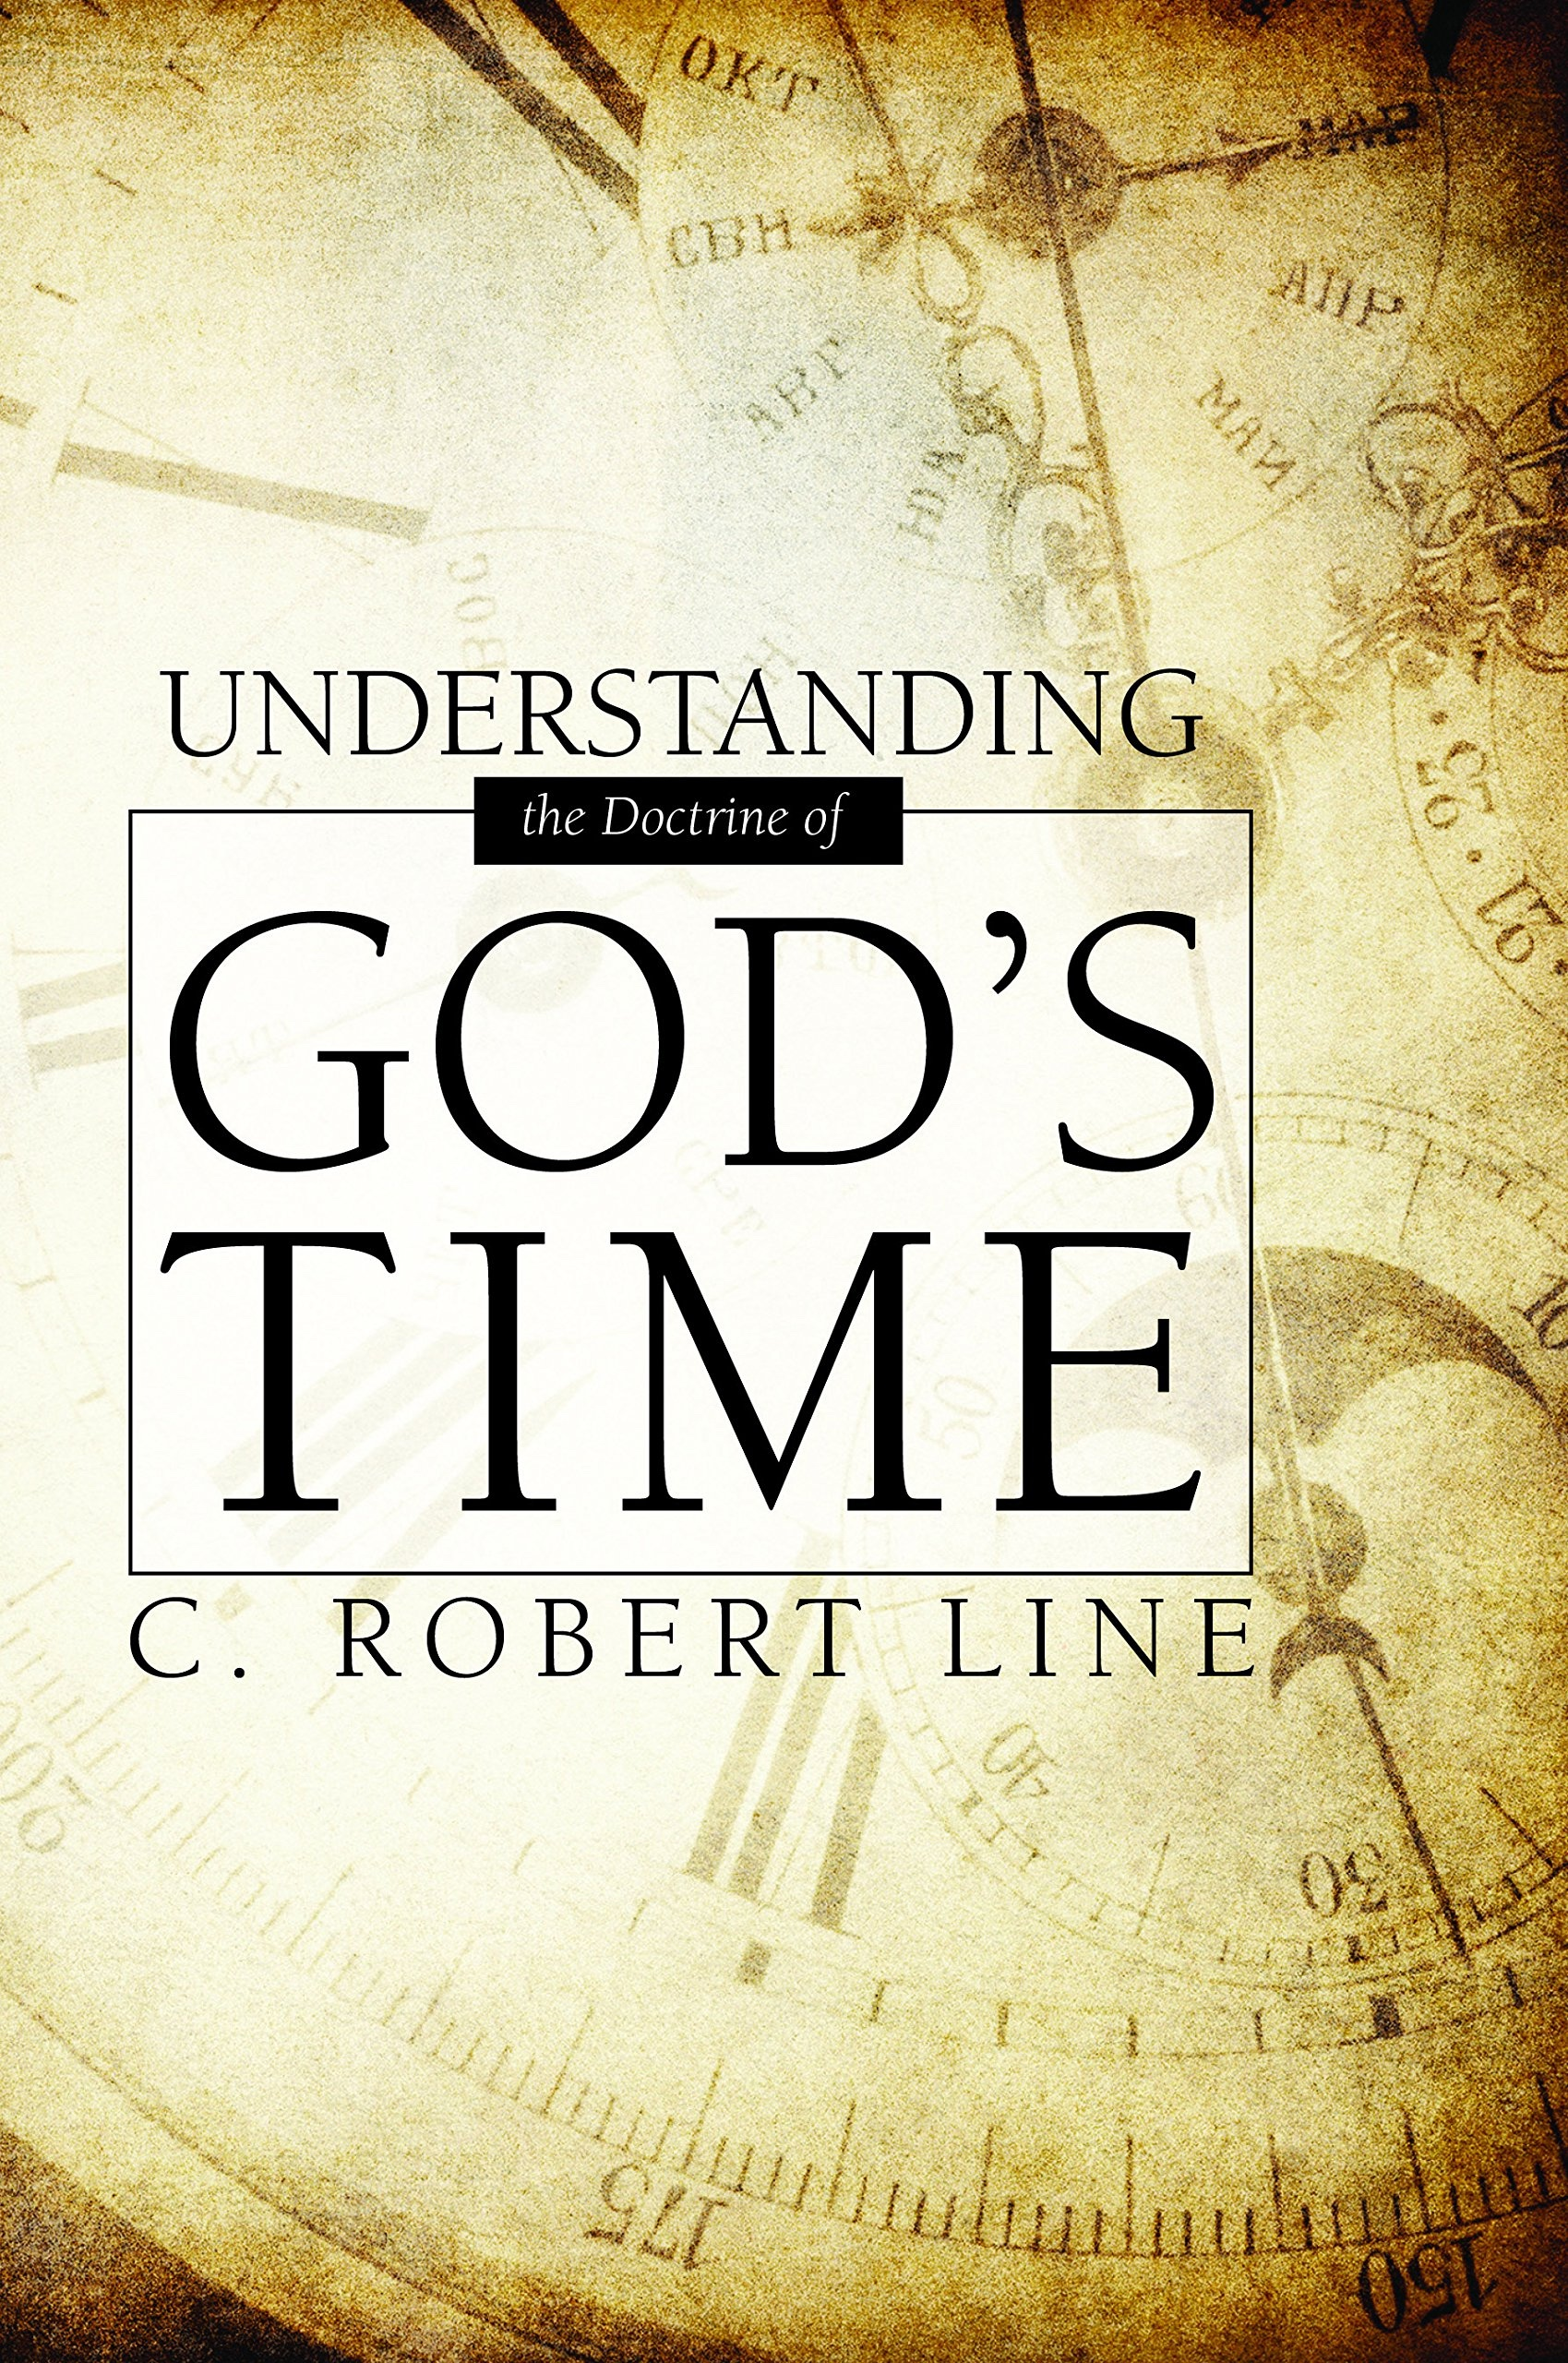 Understanding the Doctrine of God's Time, Line, C. Robert